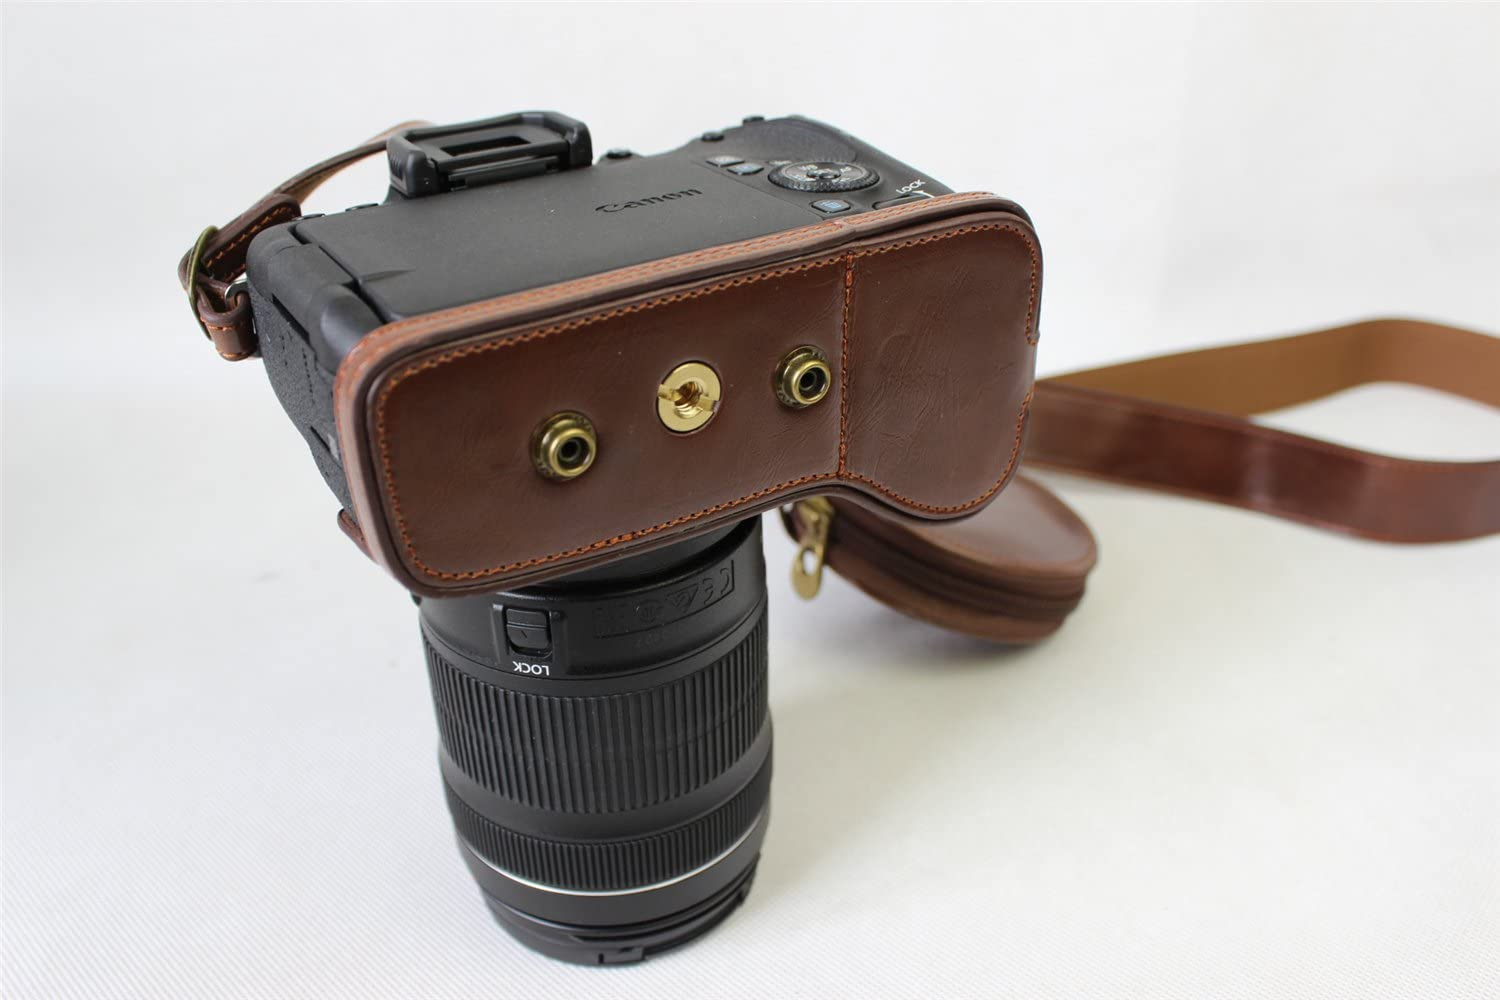 EOS 77D Case Neck Strap Mini Storage Bag -Brown BolinUS Handmade PU Leather FullBody Camera Case Bag Cover for Canon EOS 77D 800d with 18-135mm 18-200mm lens Bottom Opening Version